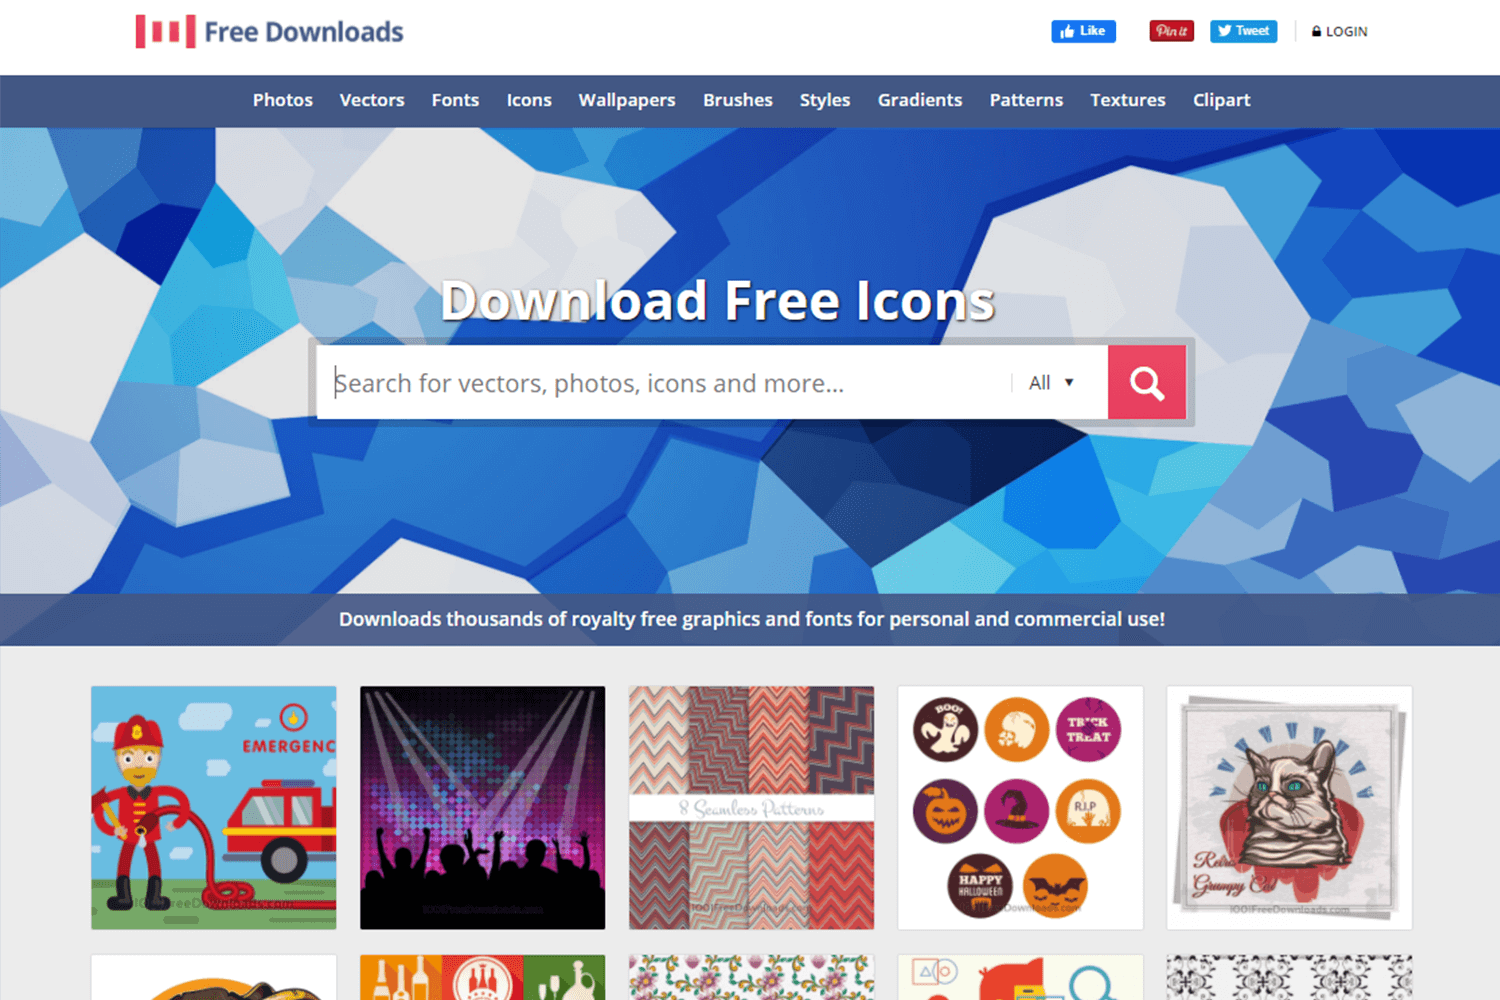 1001 free vectors as place for free images